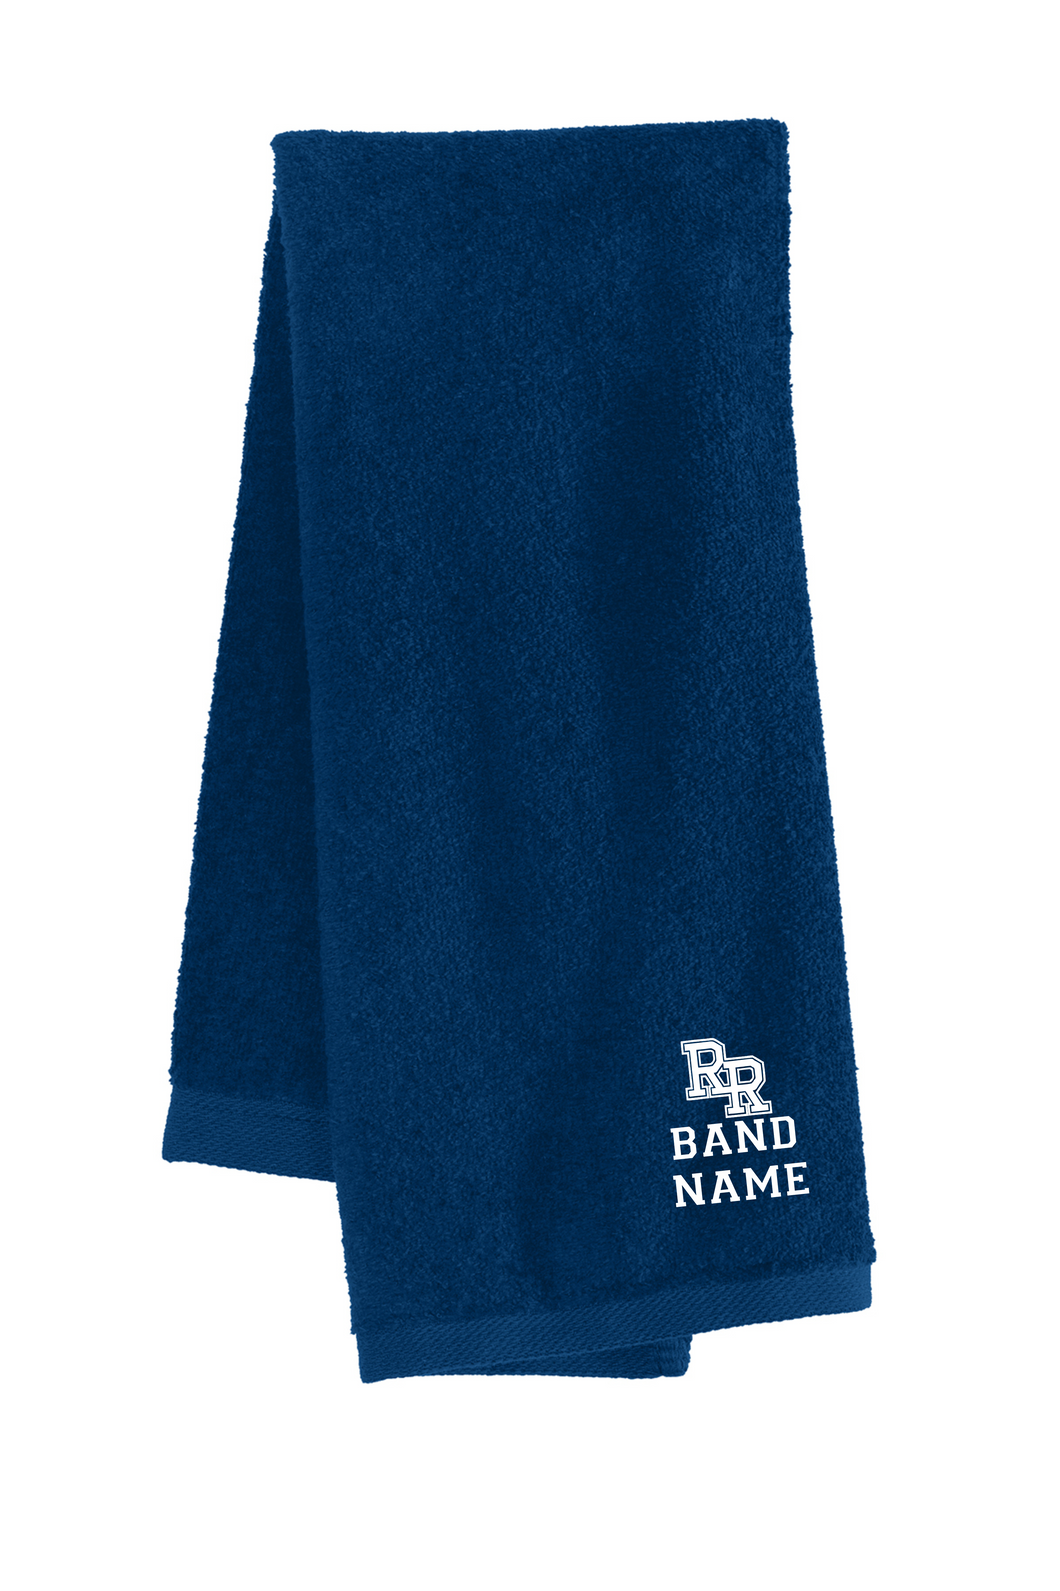 Item RR-BND-982-3 - Port Authority Sport Towel - RR Band Logo & Last Name - 16X26 Inches